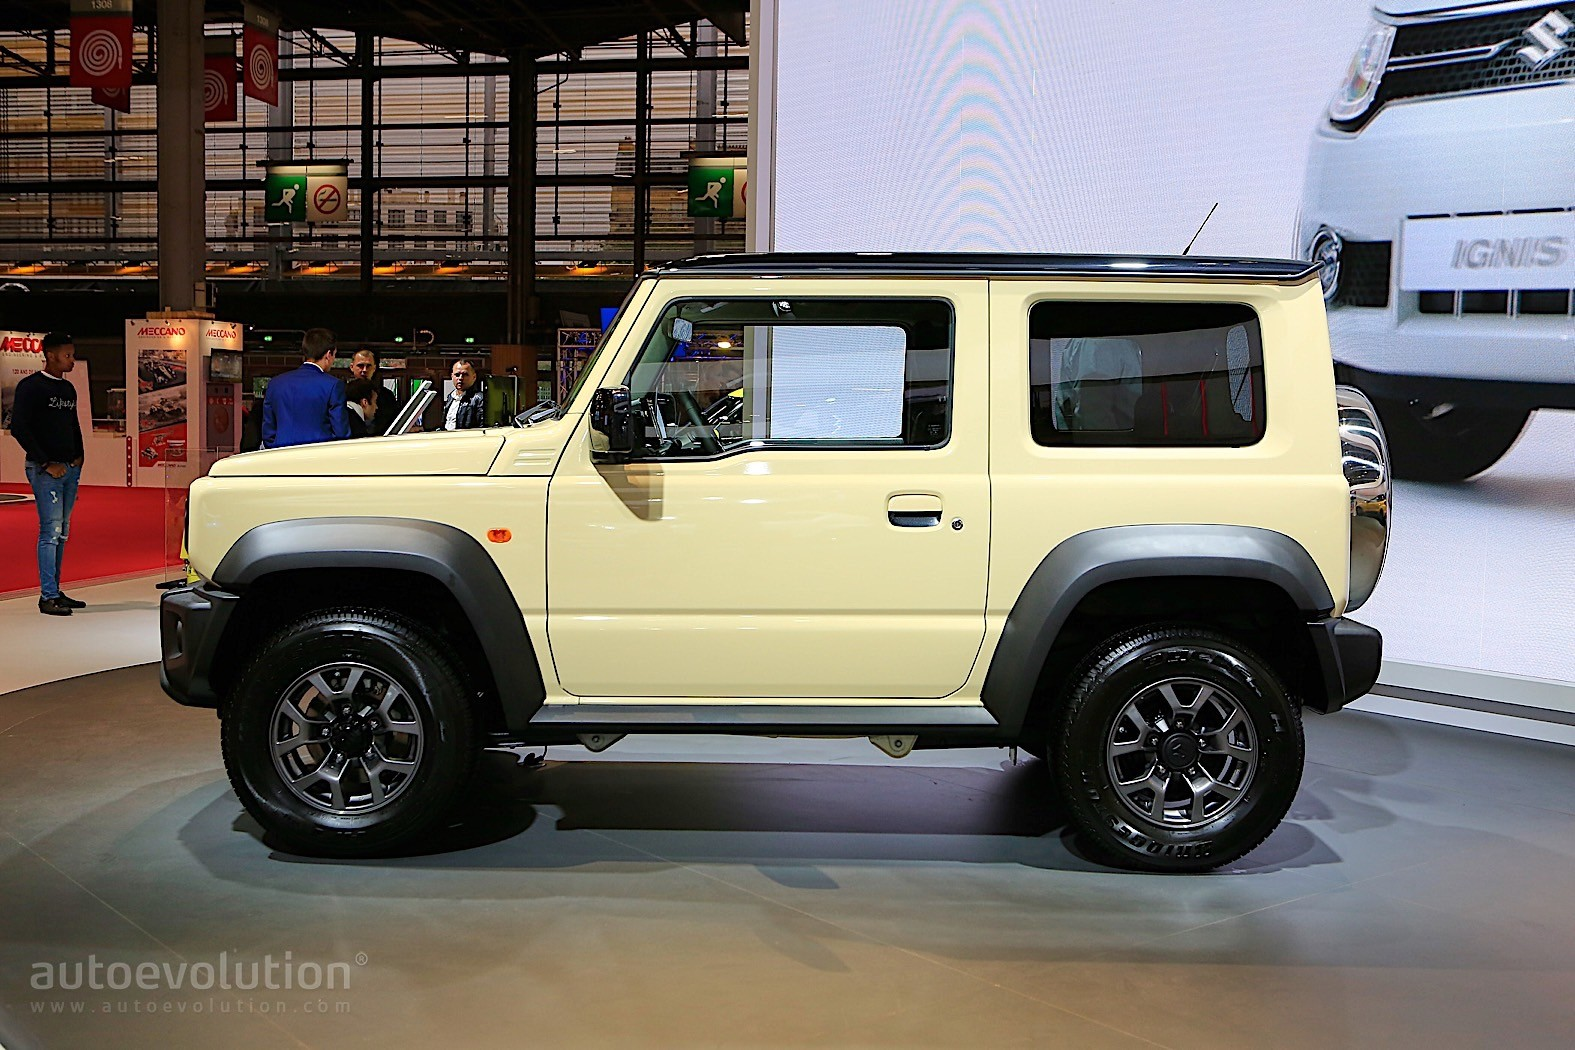 Suzuki Jimny New Generation >> 2019 Suzuki Jimny is Out for SUV Blood in Paris - autoevolution